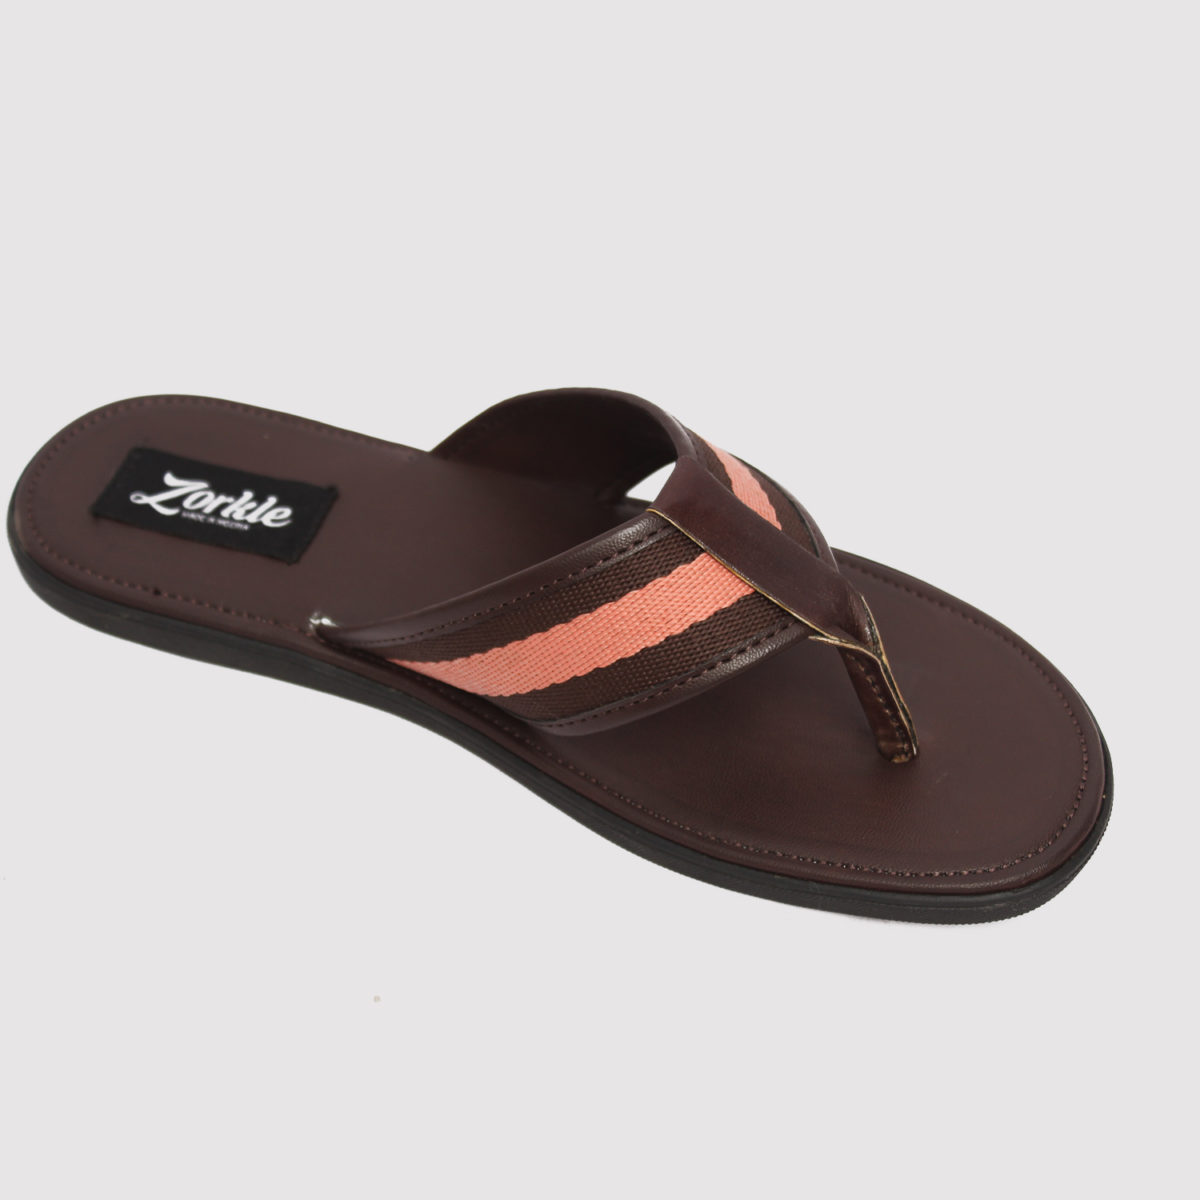 Lere flex slippers brown leather zorkle shoes lagos nigeria